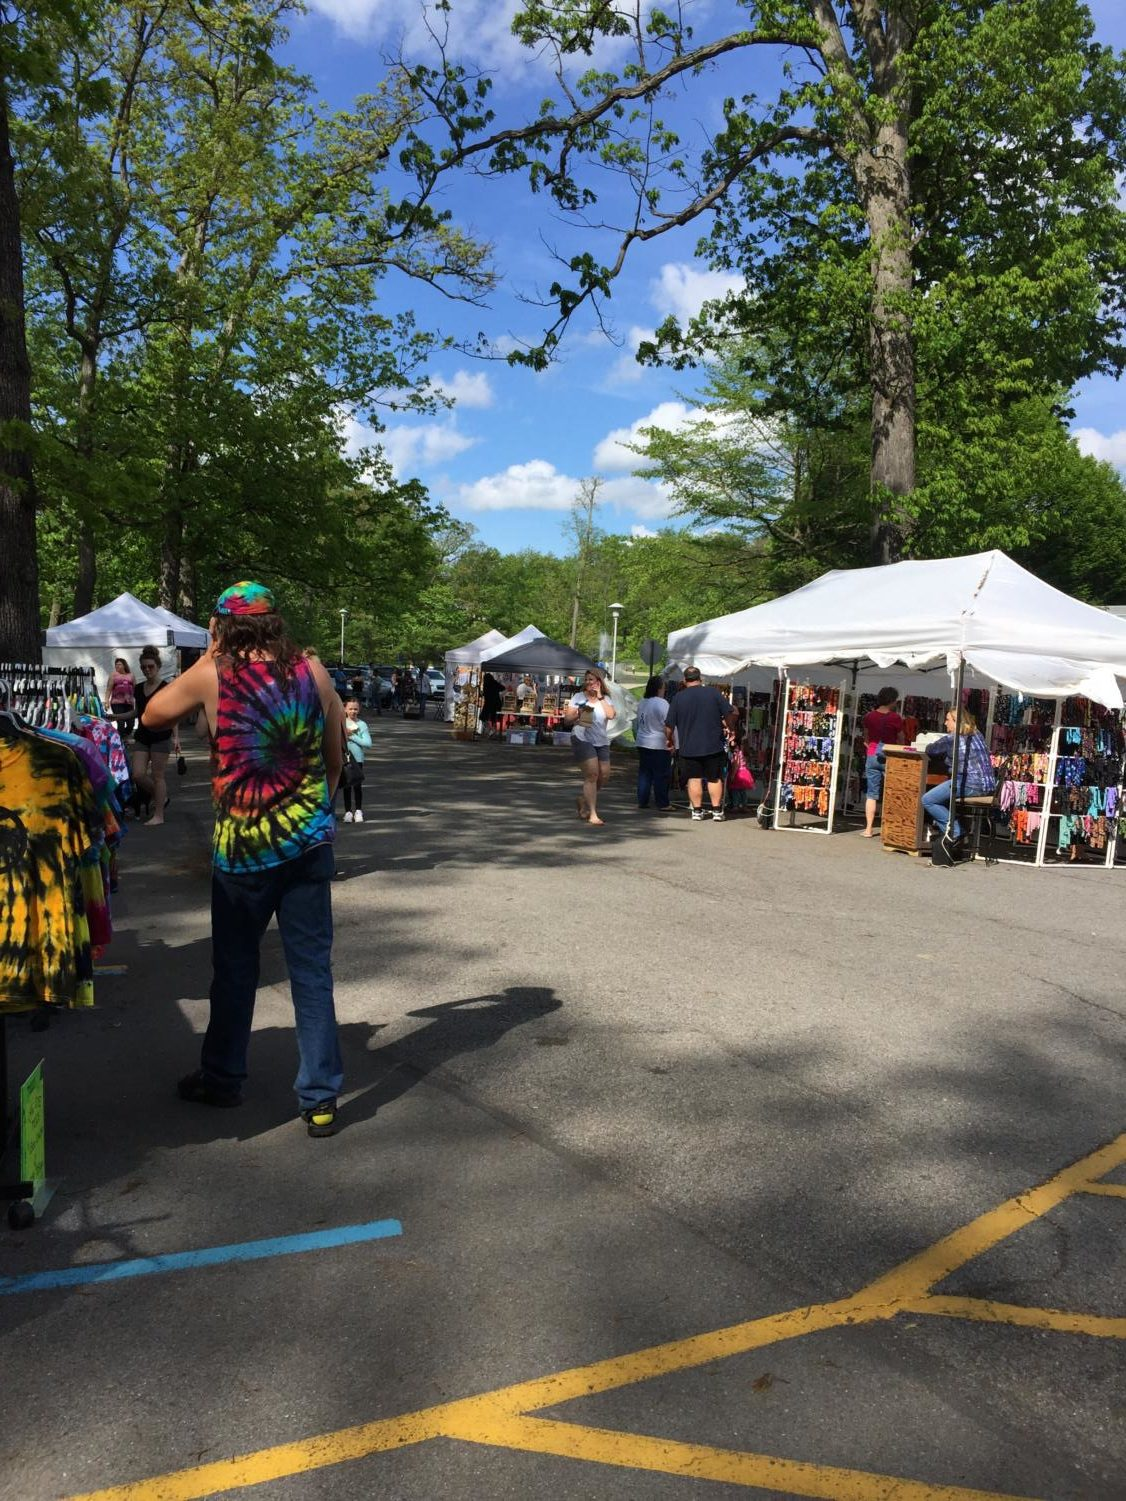 Let's walk around! On Sunday, May 20, the 2018 Arts Festival was held at Penn State Altoona.